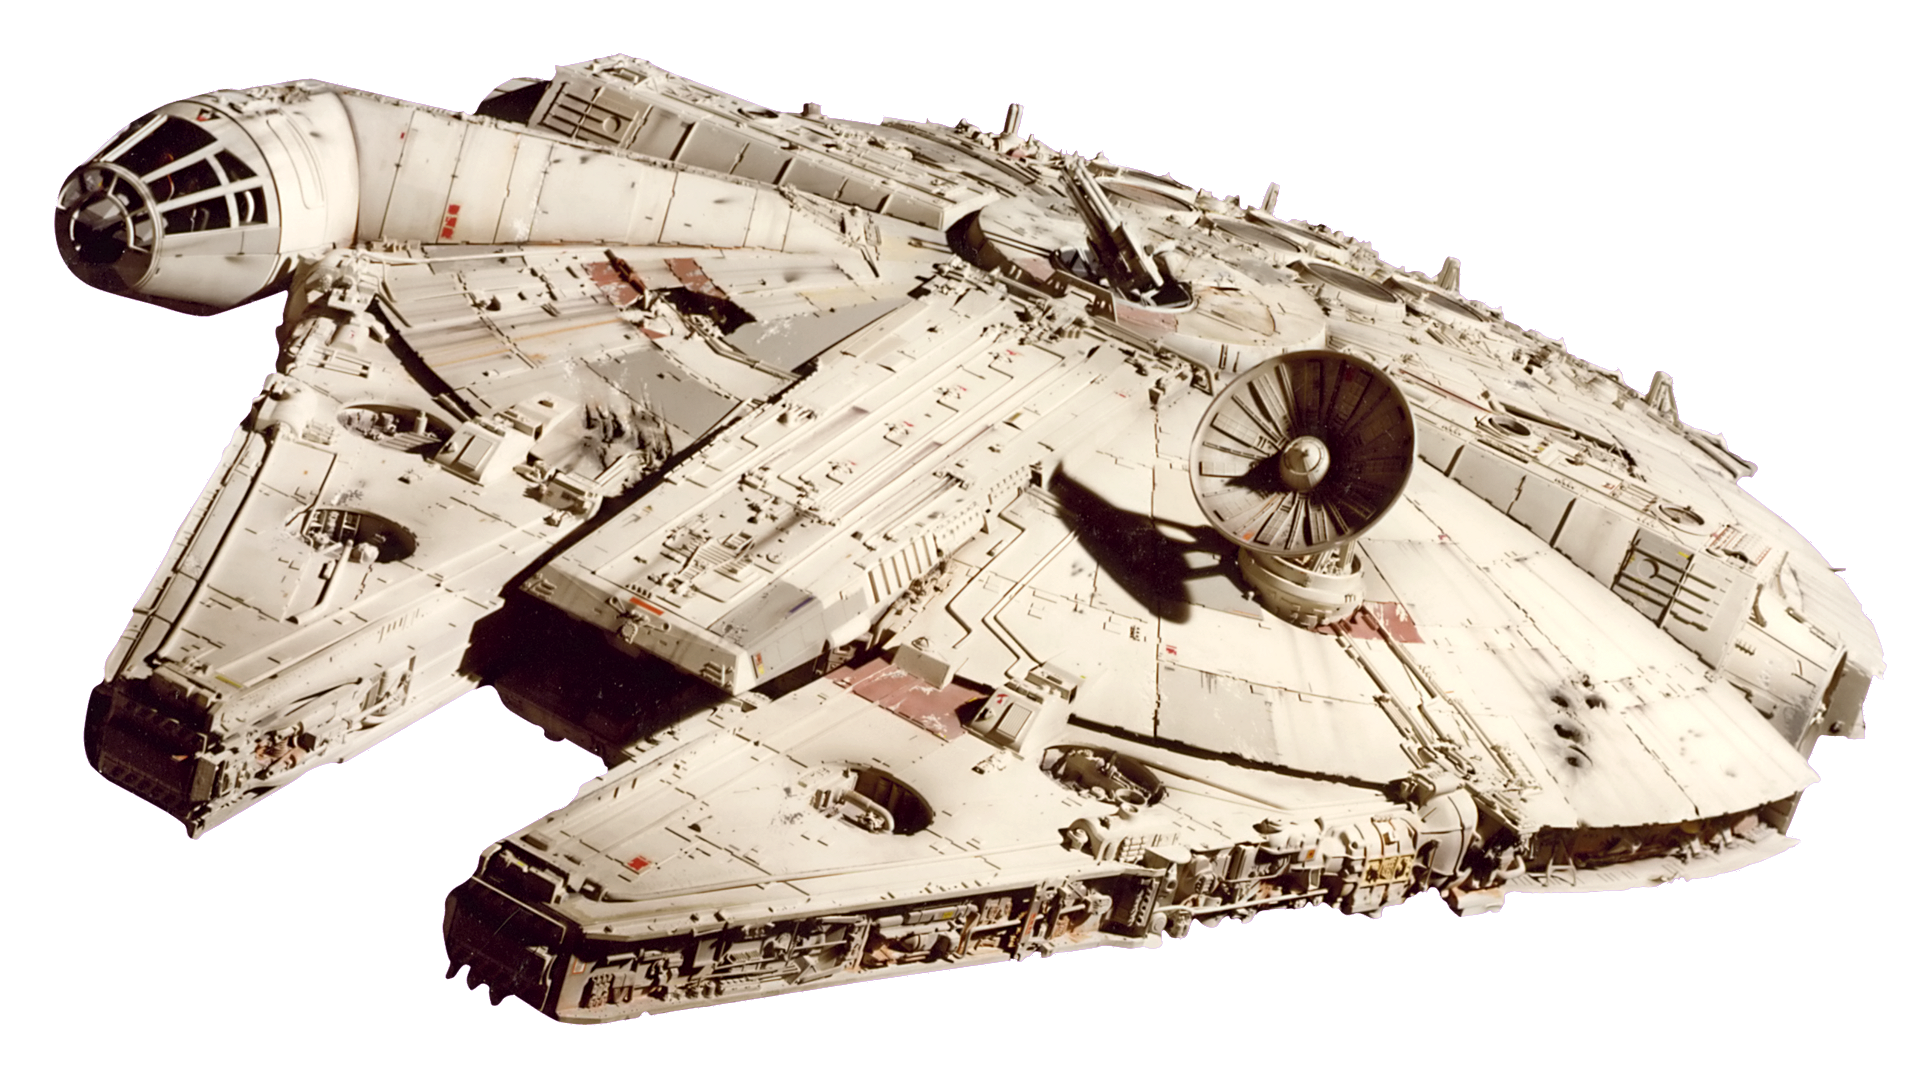 Star wars millennium falcon clipart graphic library stock Gift Guide - Kansas State University graphic library stock